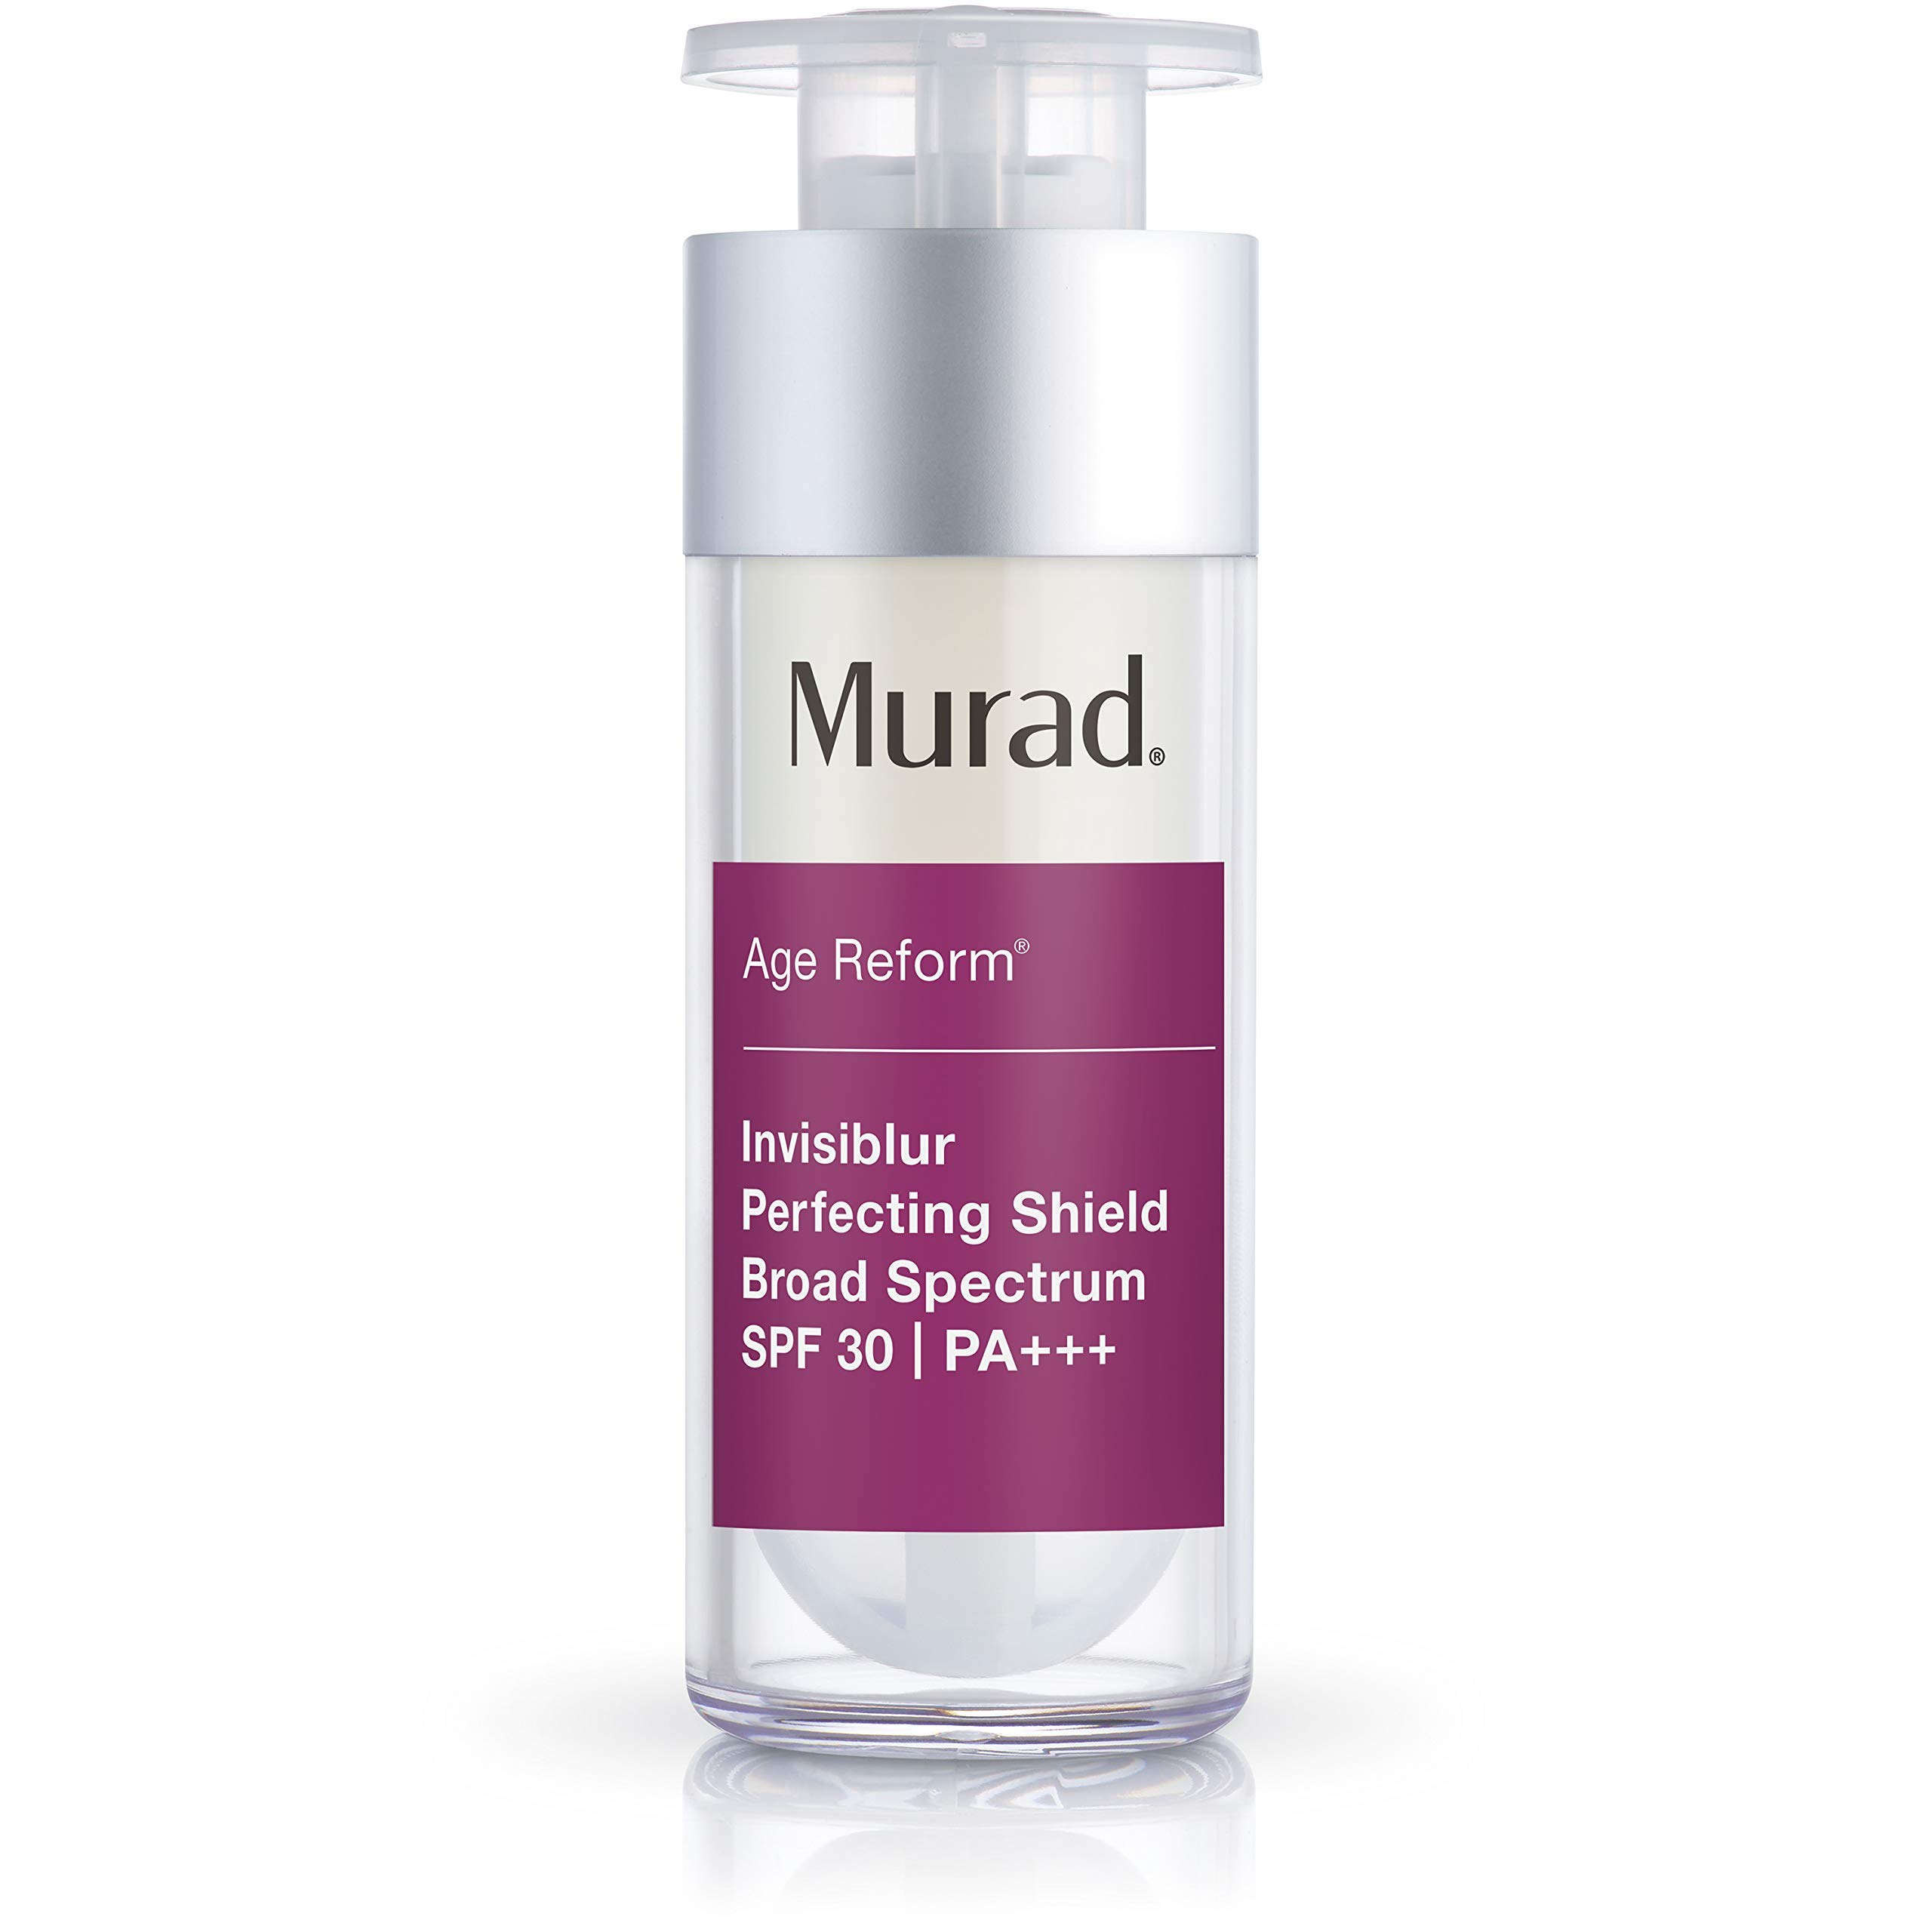 Murad Invisiblur Perfecting Shield Broad Spectrum SPF 30 PA+++ Serum by Murad (Image #1)